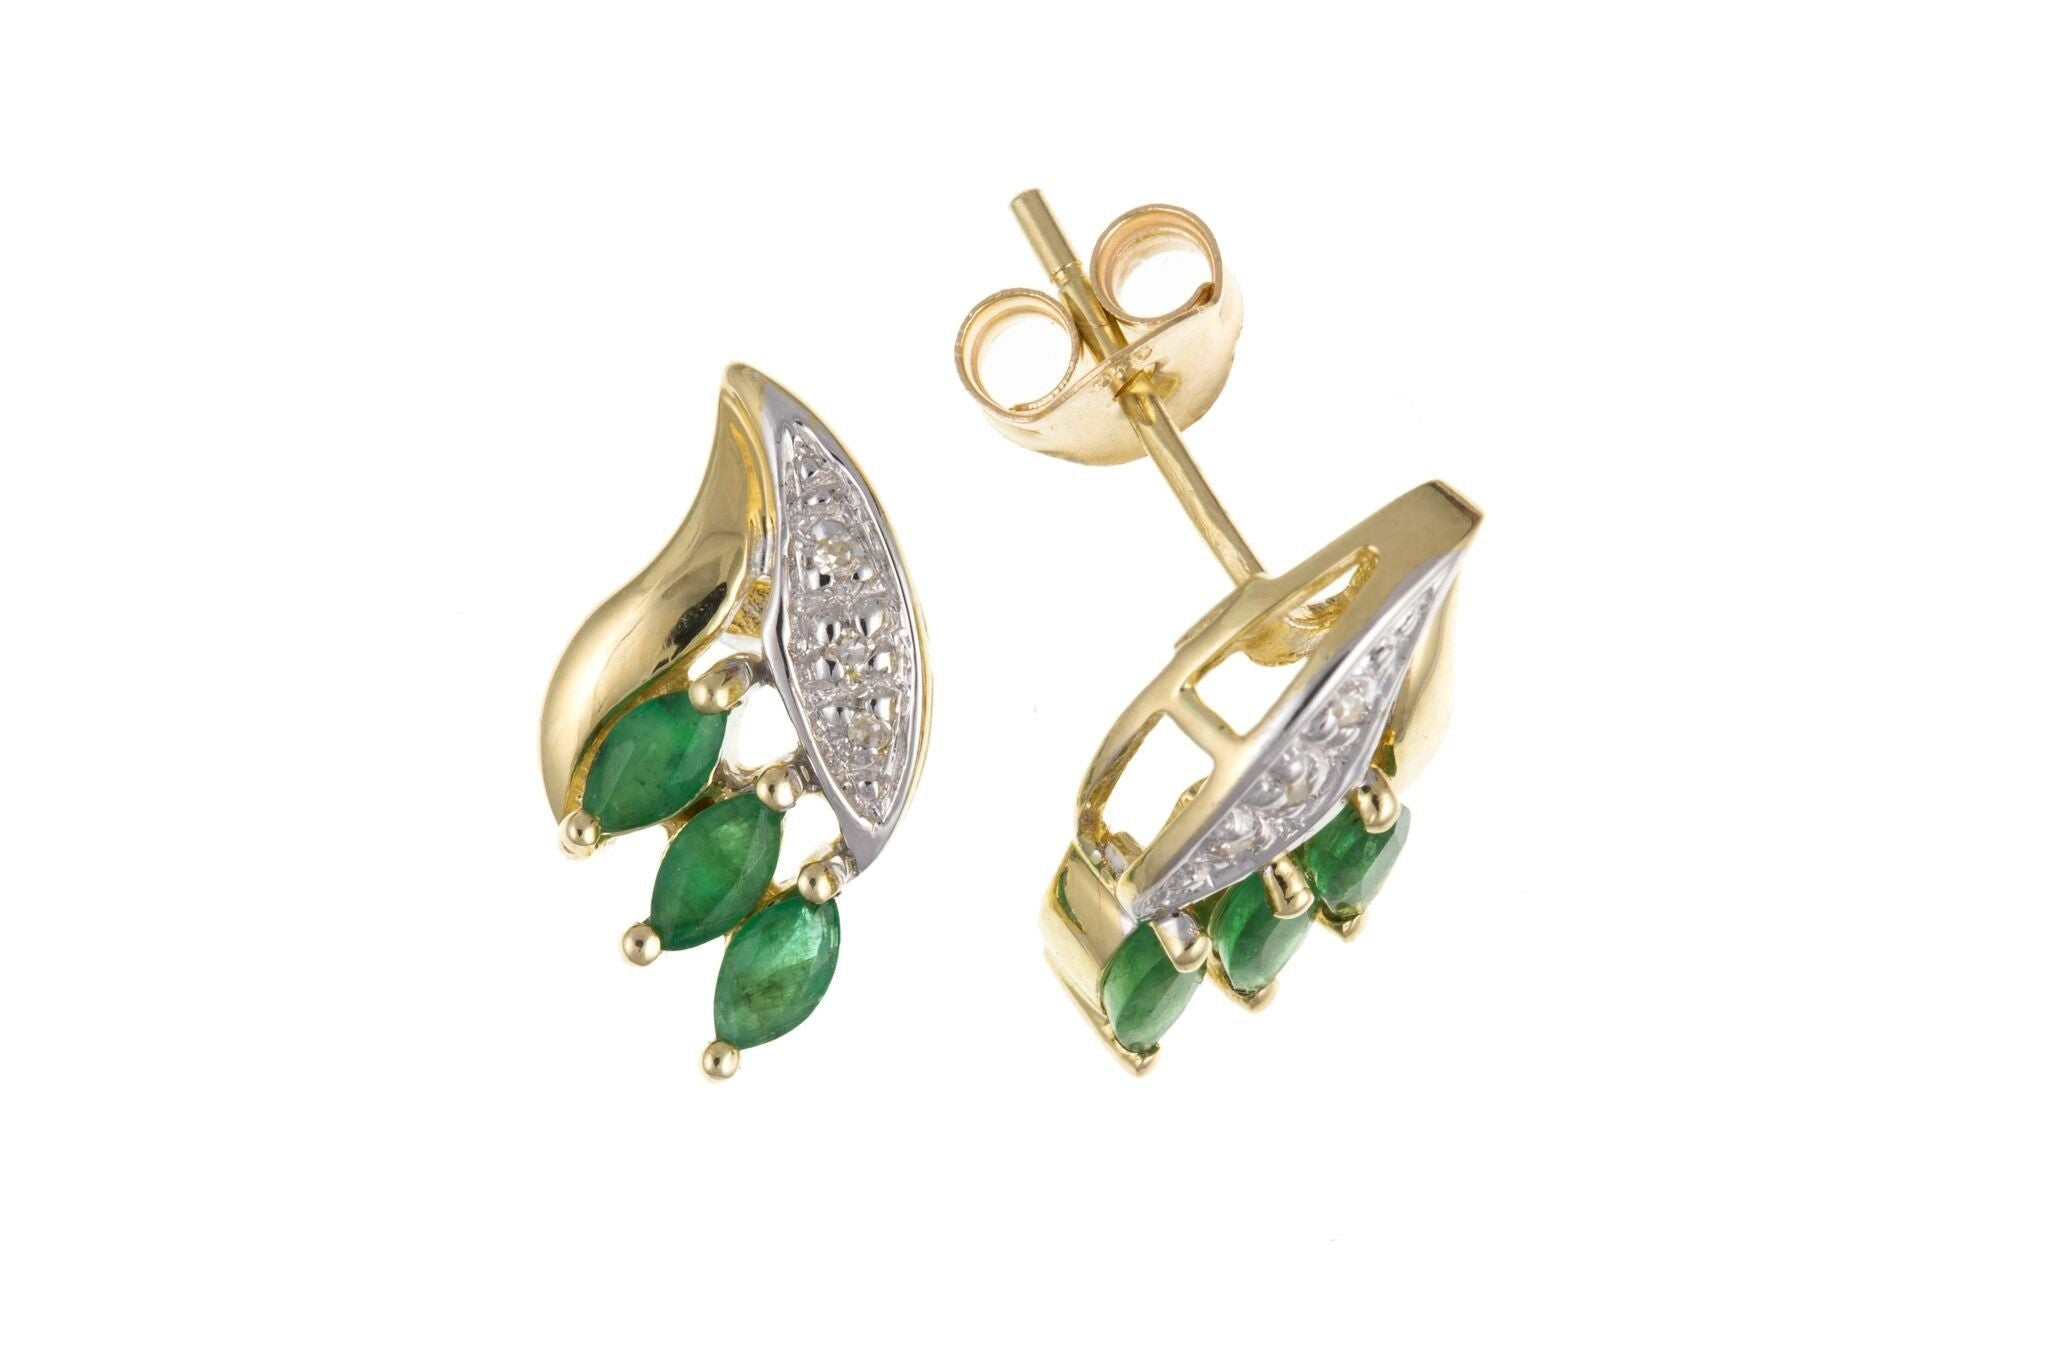 9ct Yellow Gold Emerald & Diamond Stud Earrings